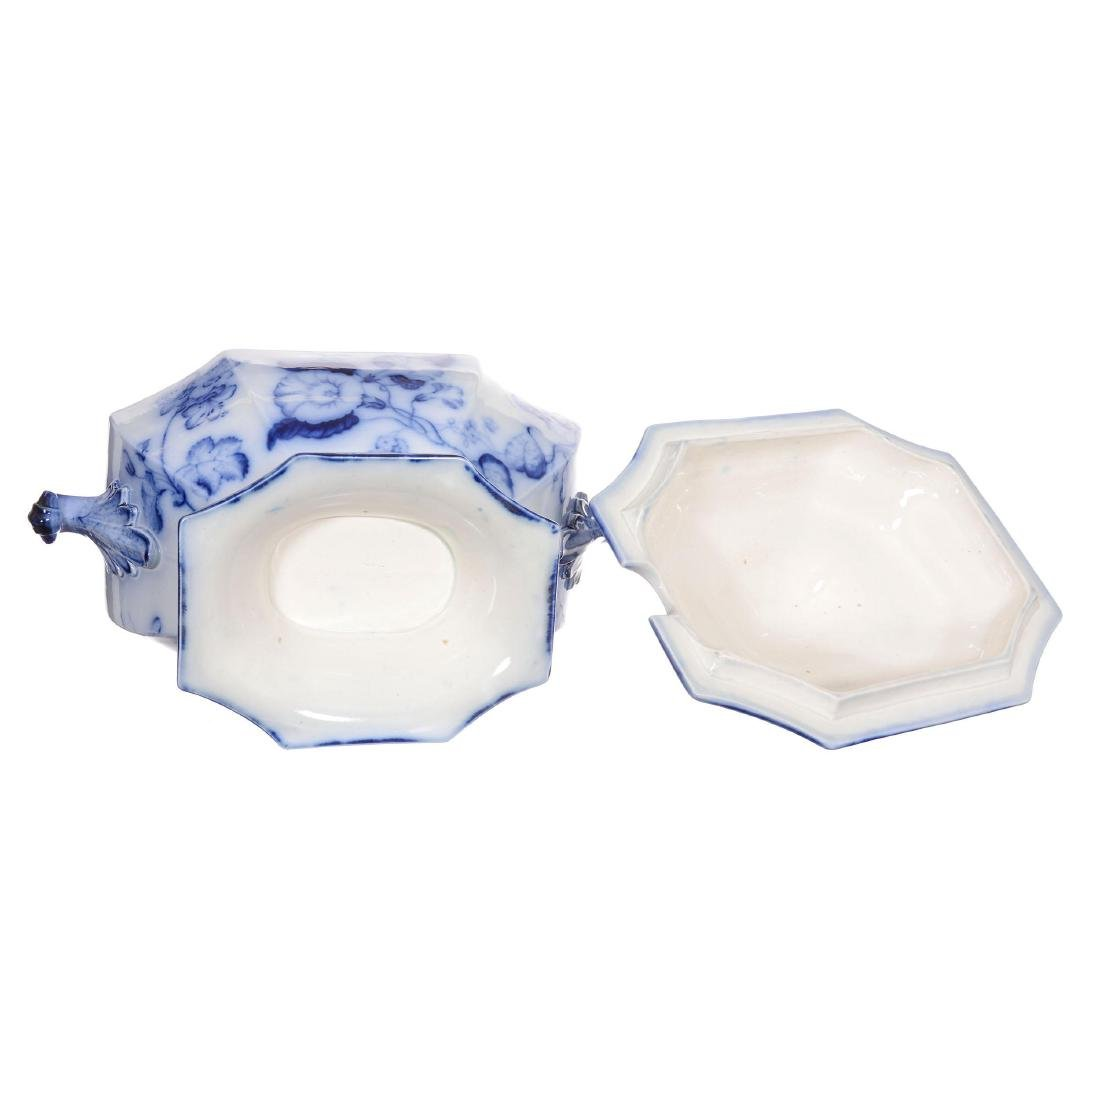 Flow Blue Morning Glory Pattern Covered Tureen - 2